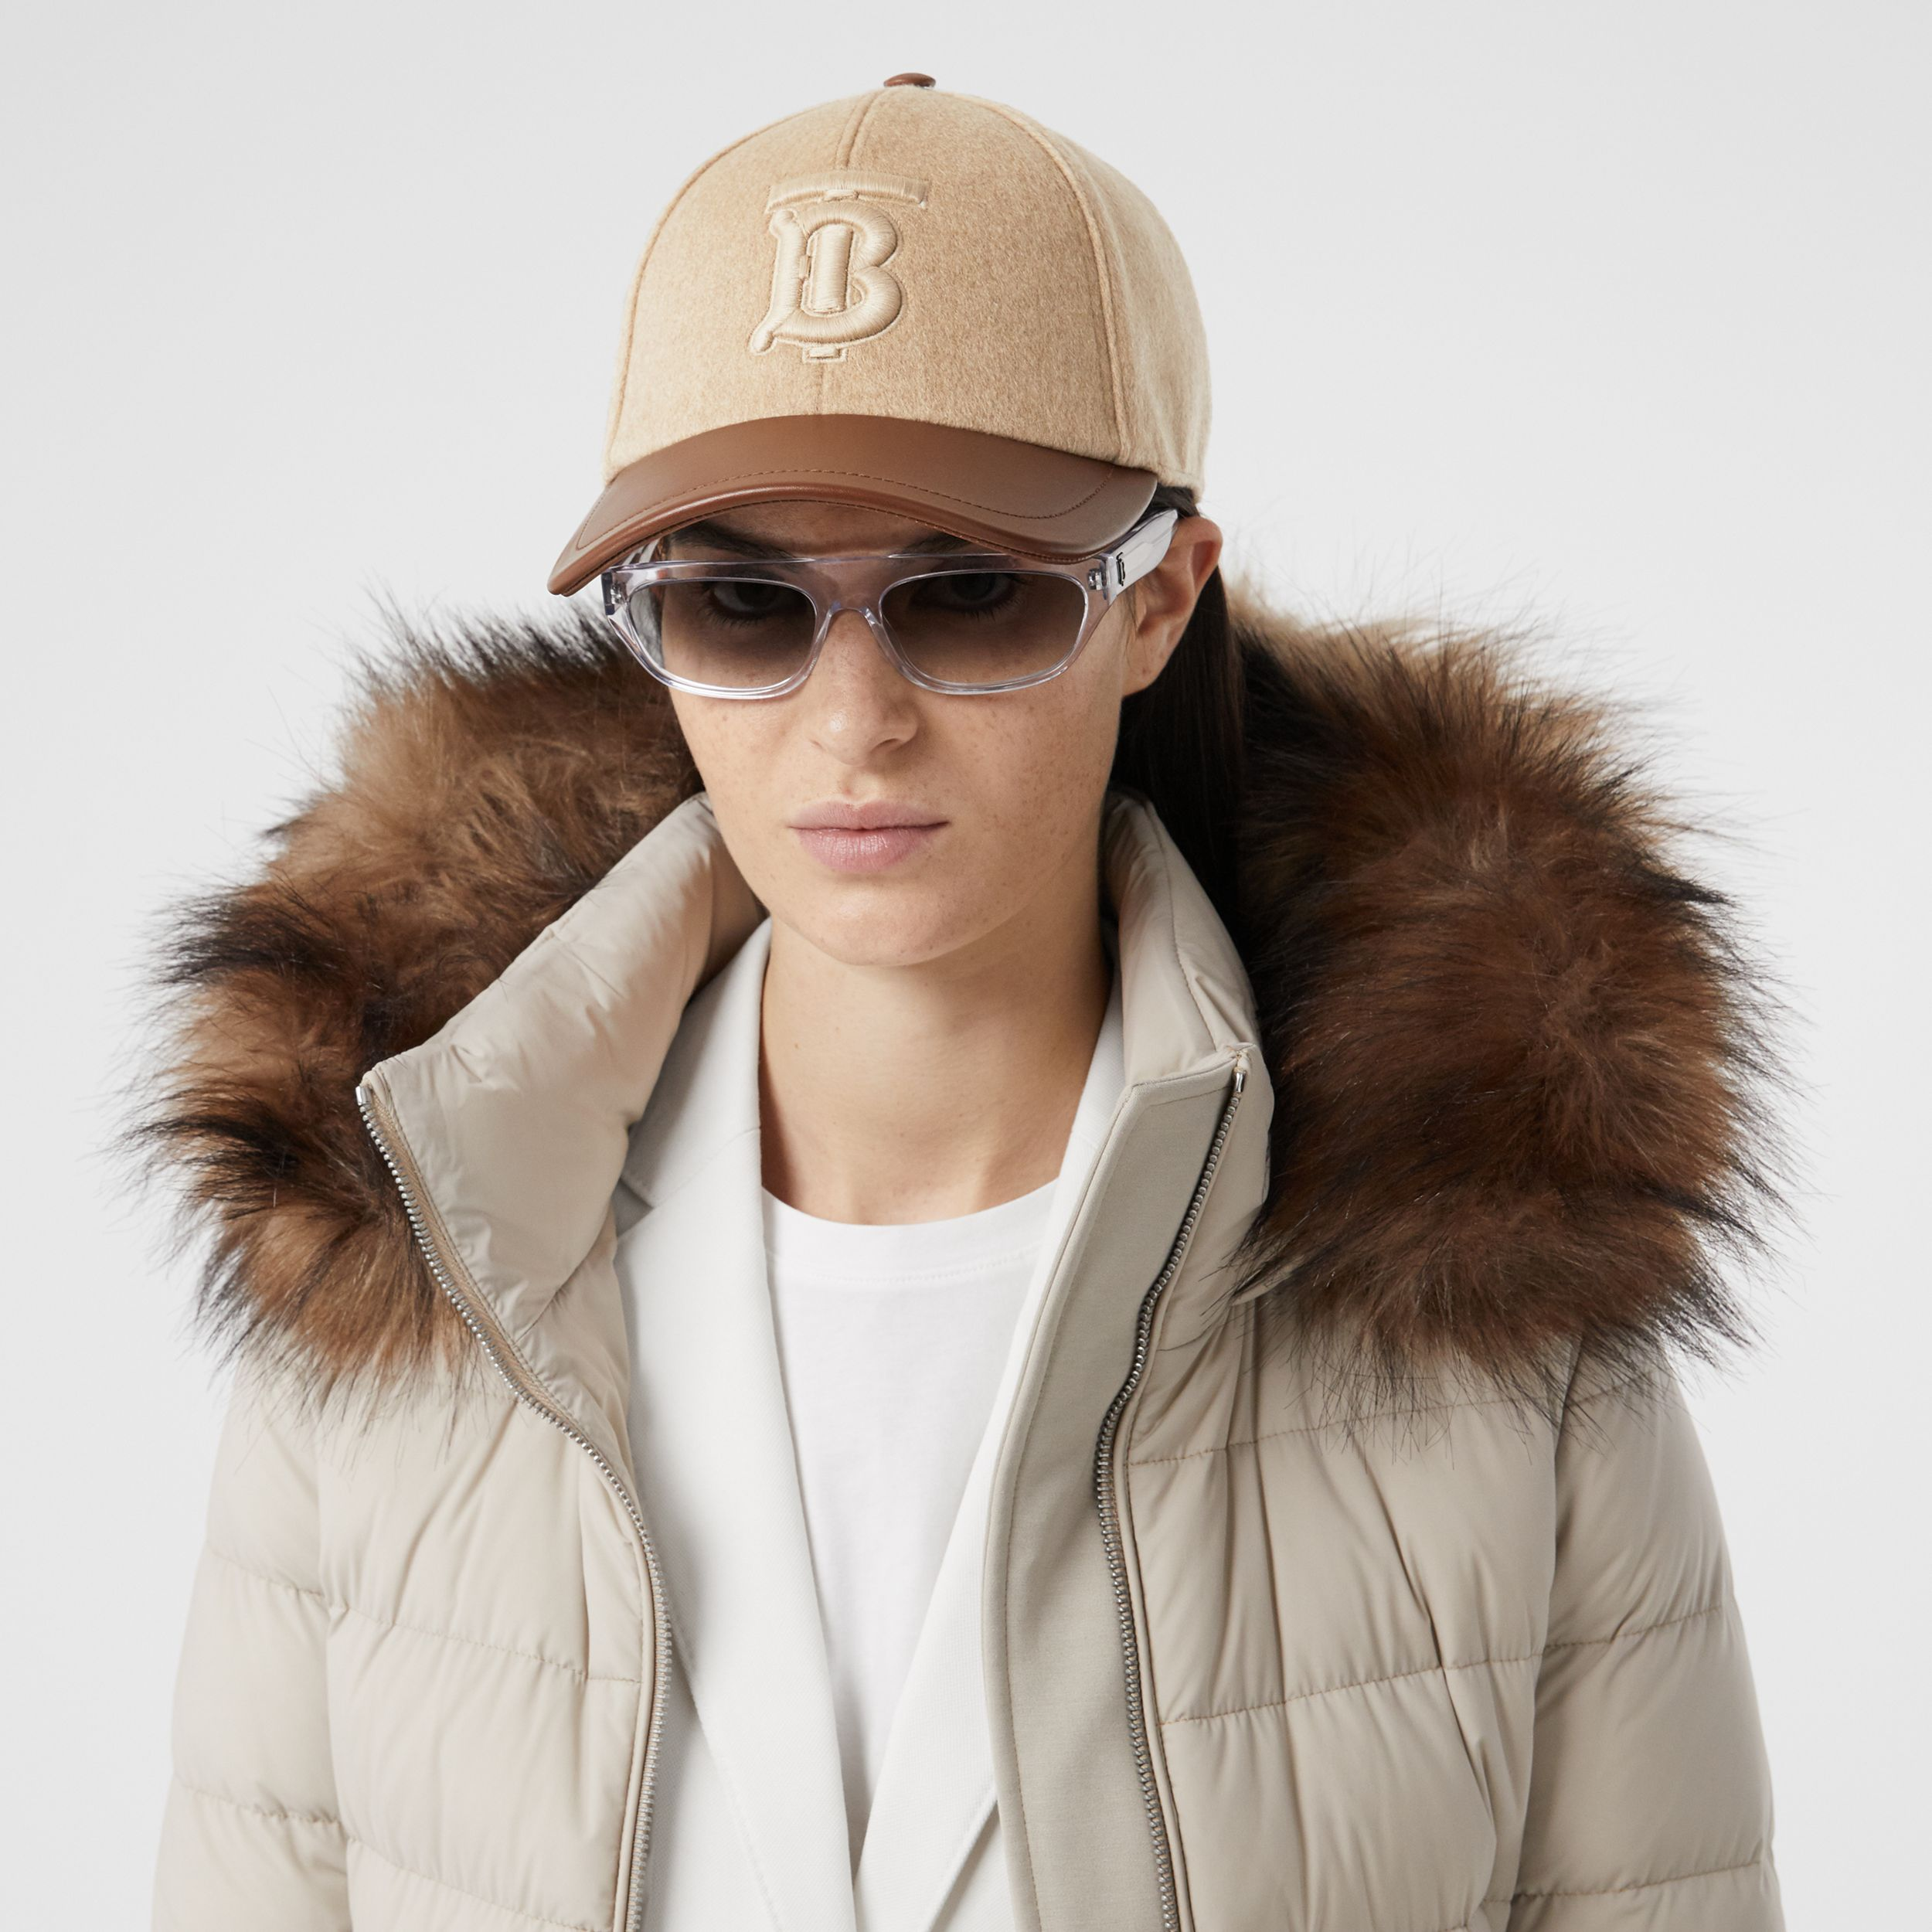 Monogram Motif Cashmere and Leather Baseball Cap in Camel | Burberry Canada - 3